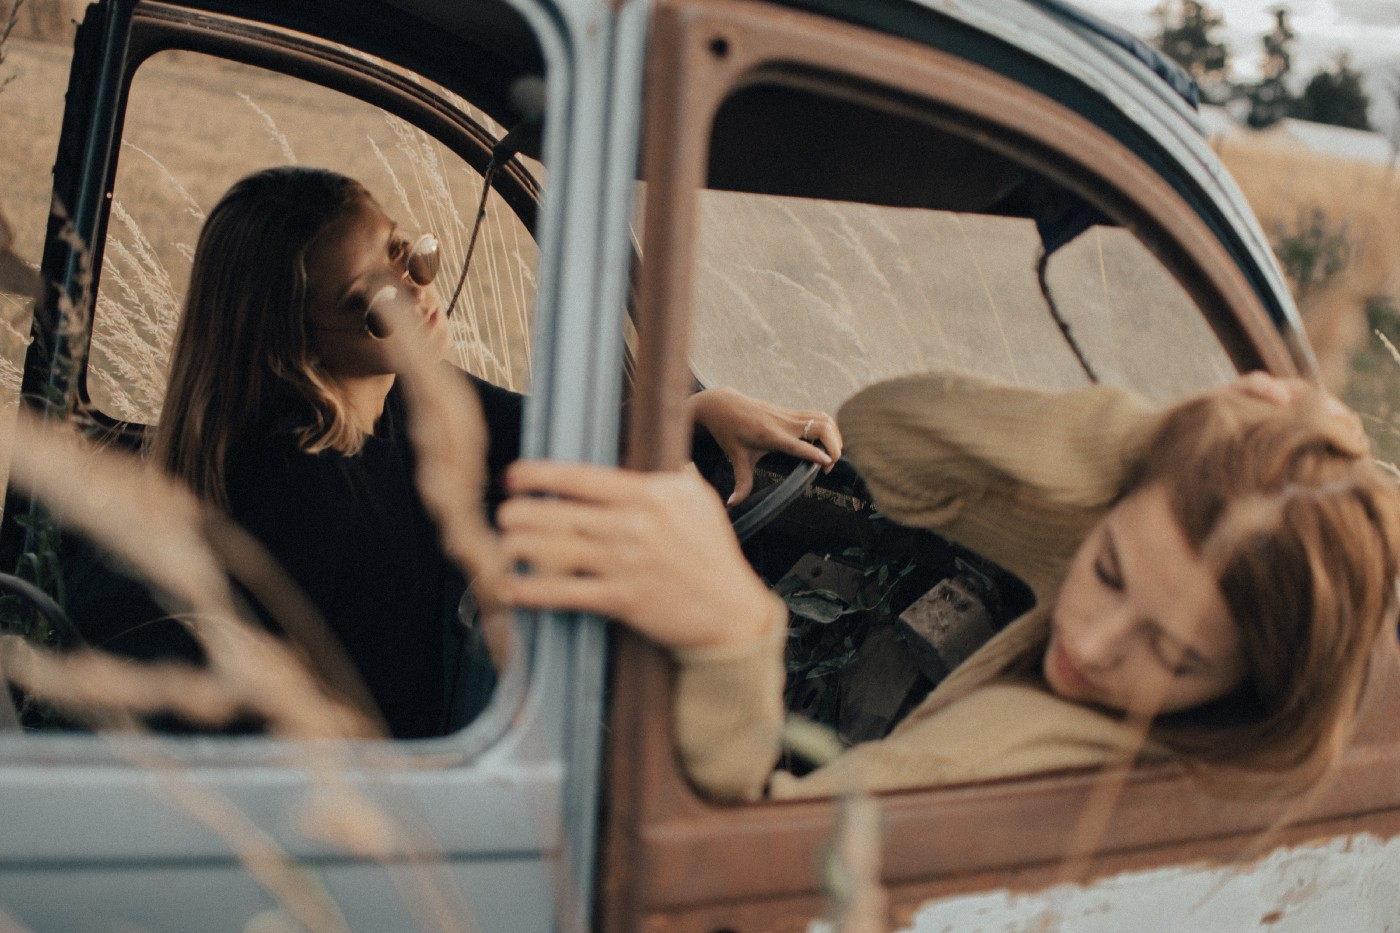 Two girls looking sad in an old car.